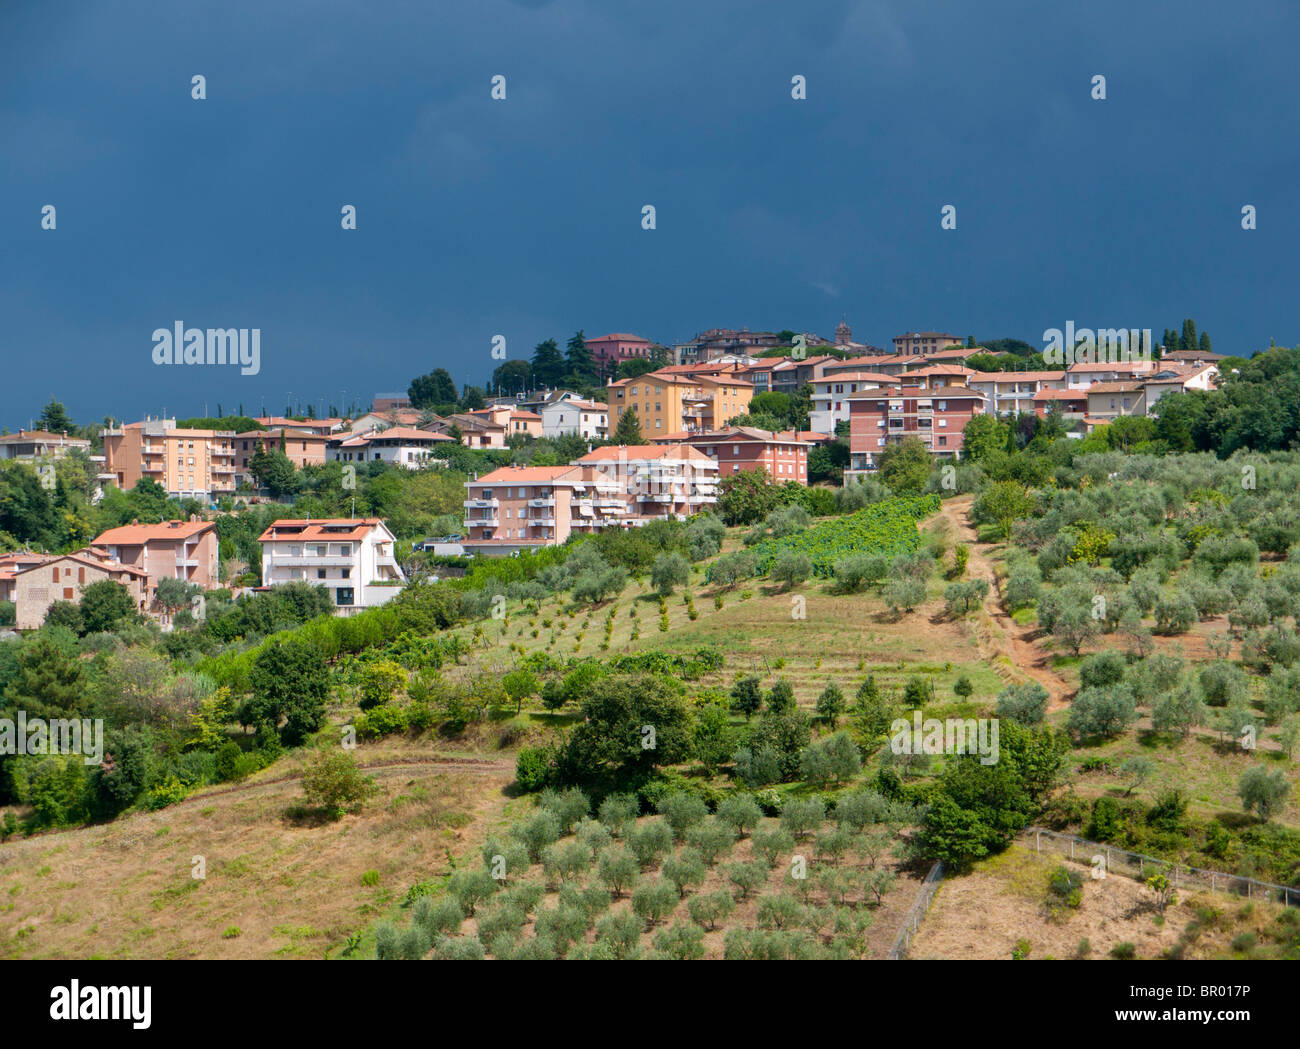 Thunderstorm clouds above a cultivated landscape with olive trees at Montaione in Tuscany / Italy. - Stock Image